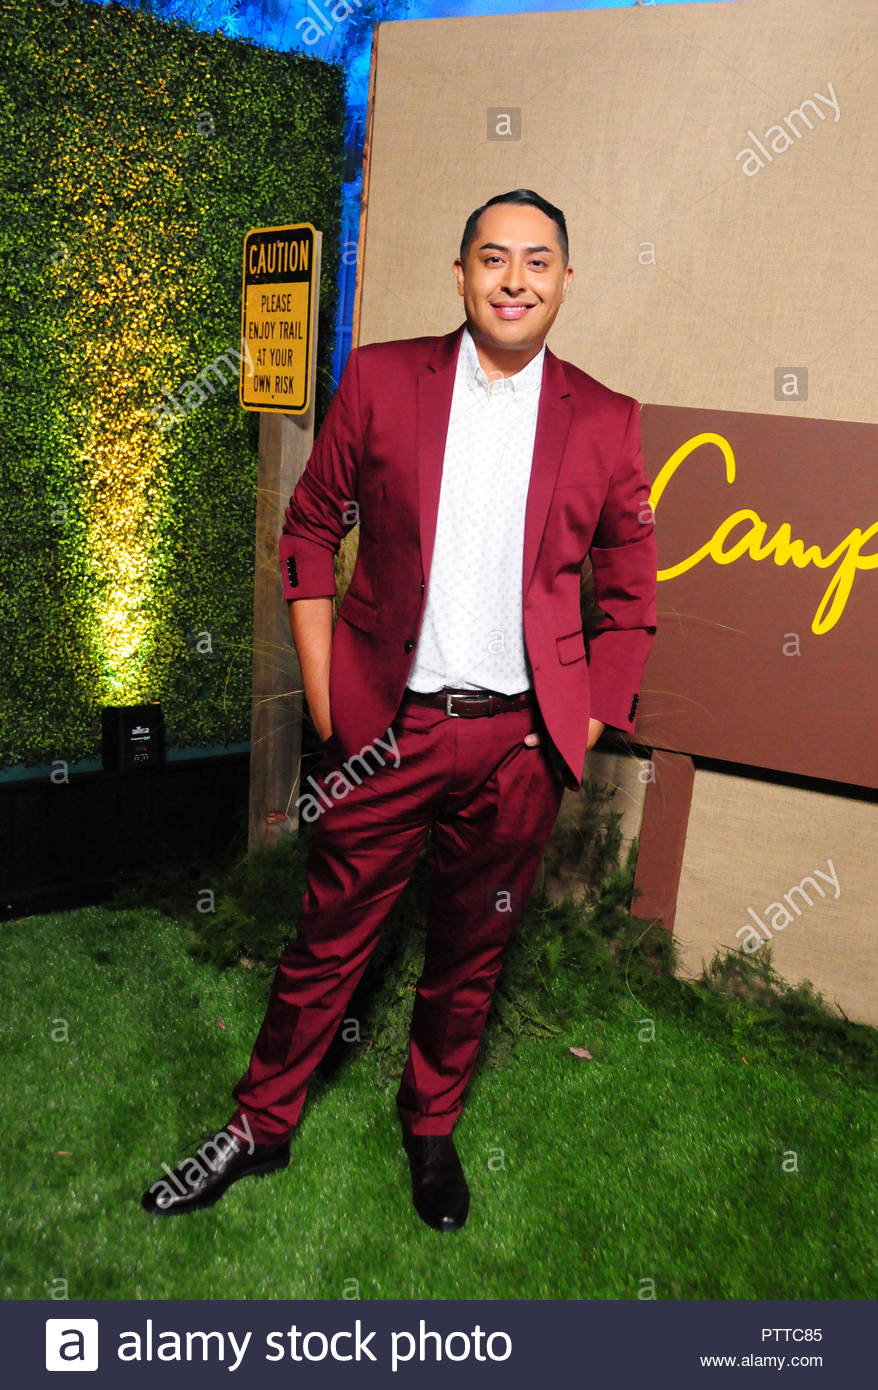 los-angeles-usa-10th-oct-2018-actor-lian-castillo-attends-the-los-angeles-premiere-of-hbo-series-camping-on-october-10-2018-at-paramount-studios-in-los-angeles-california-photo-by-barry-kingalamy-live-news-PTTC85.jpg